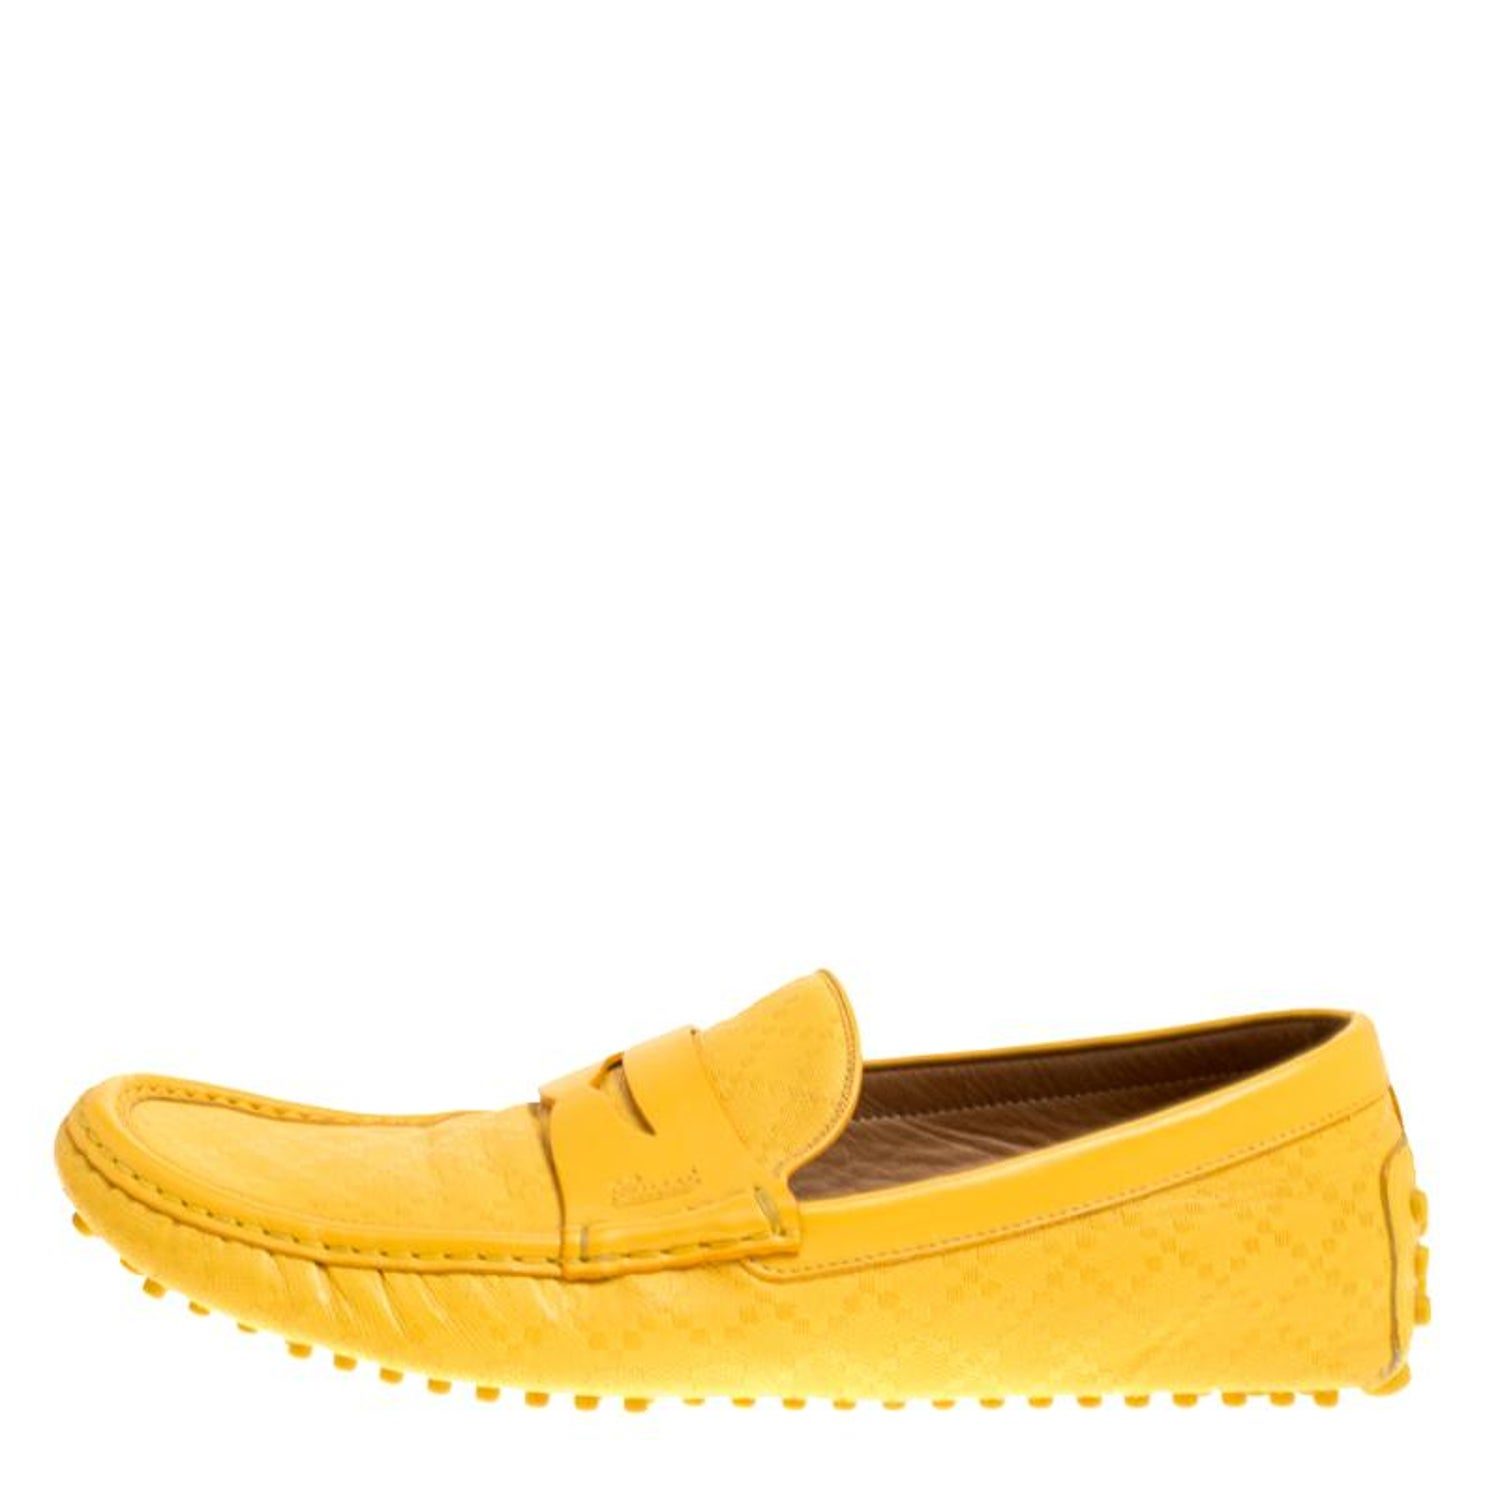 c46699dfc0c Gucci Yellow Diamante Leather Driver Loafers Size 44.5 For Sale at 1stdibs